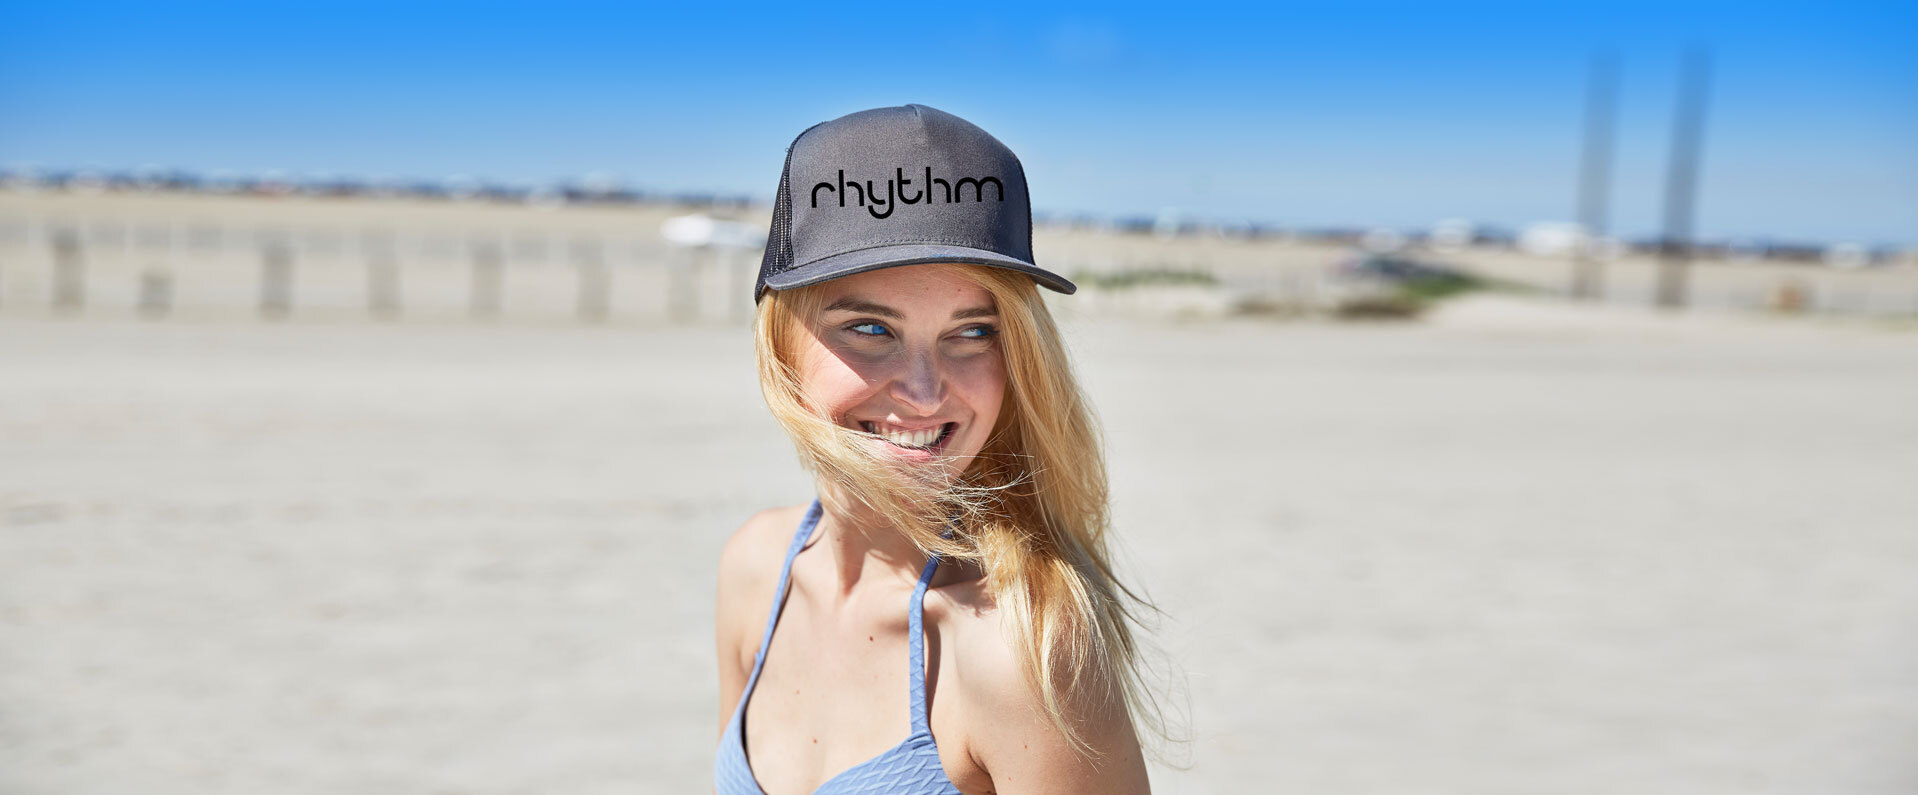 Rhythm CBD Seltzer Hats and Beanies for Men and Women